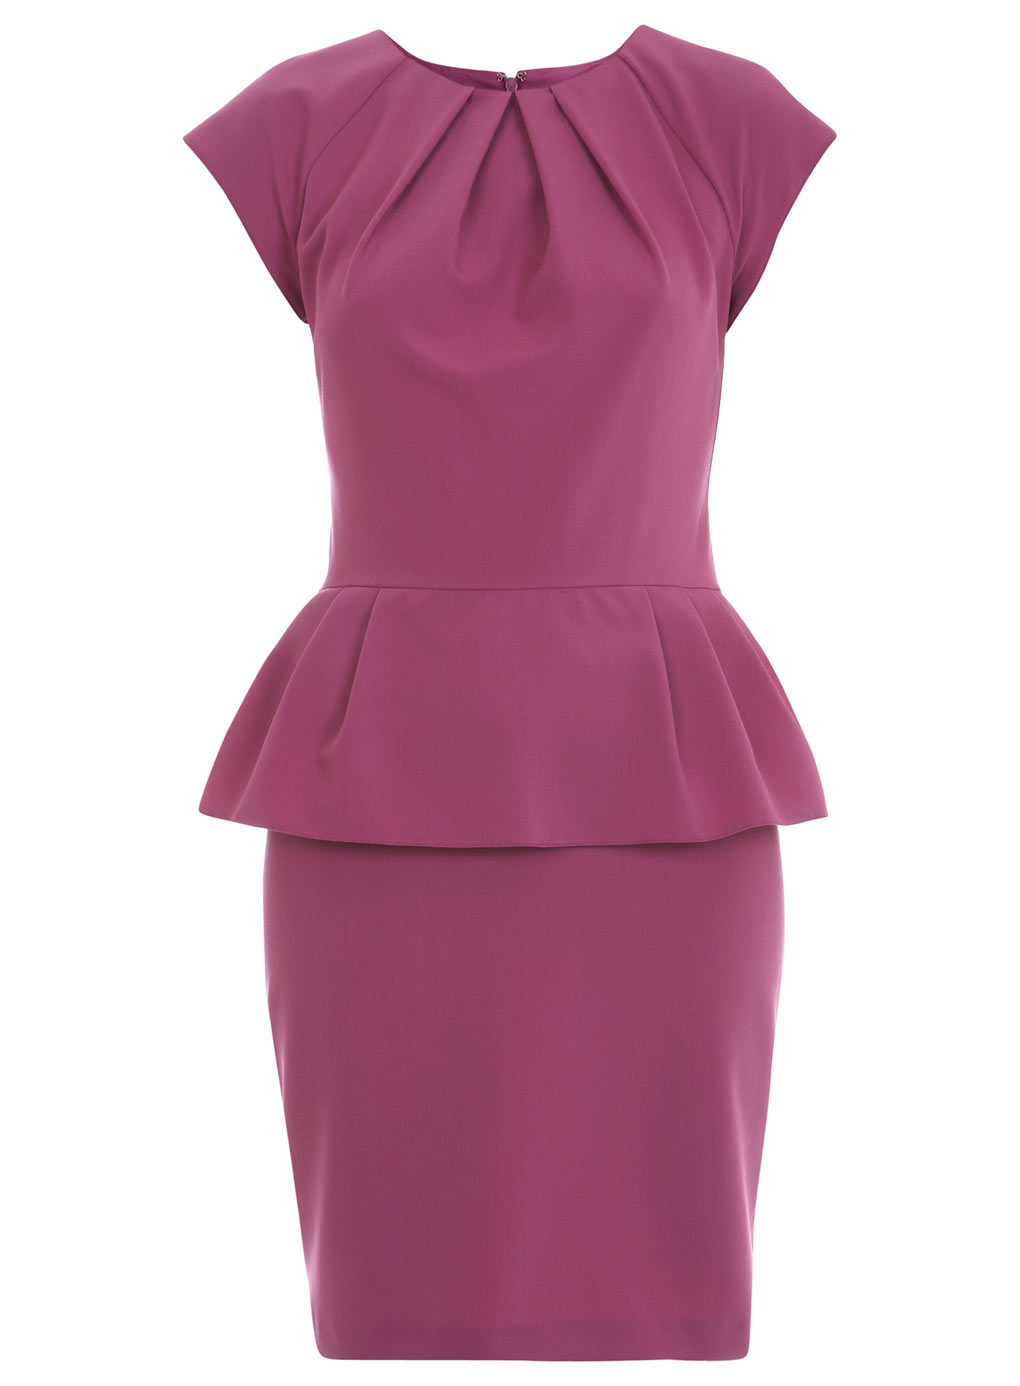 Trend The Peplum Dress Fashion In Motion